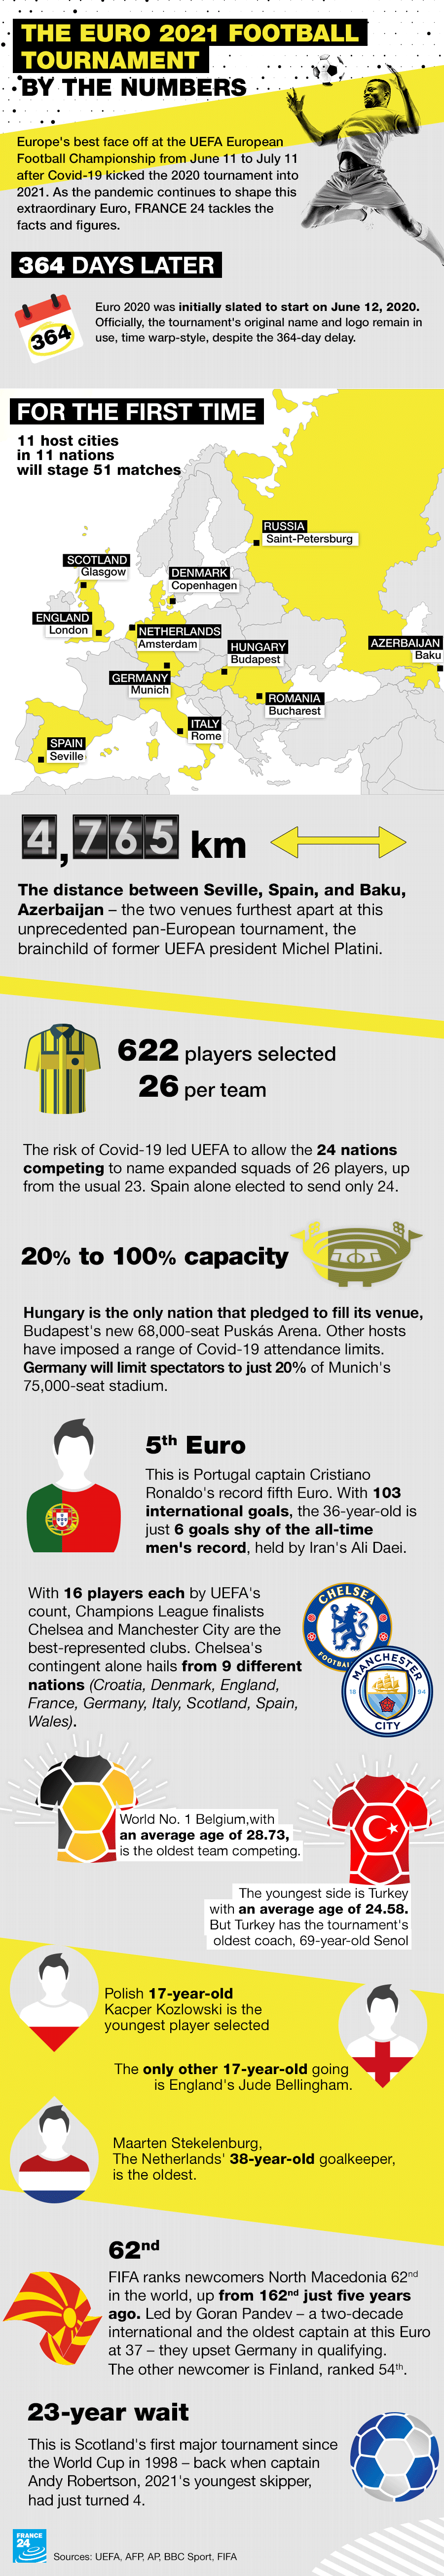 Euro 2021, by the numbers.